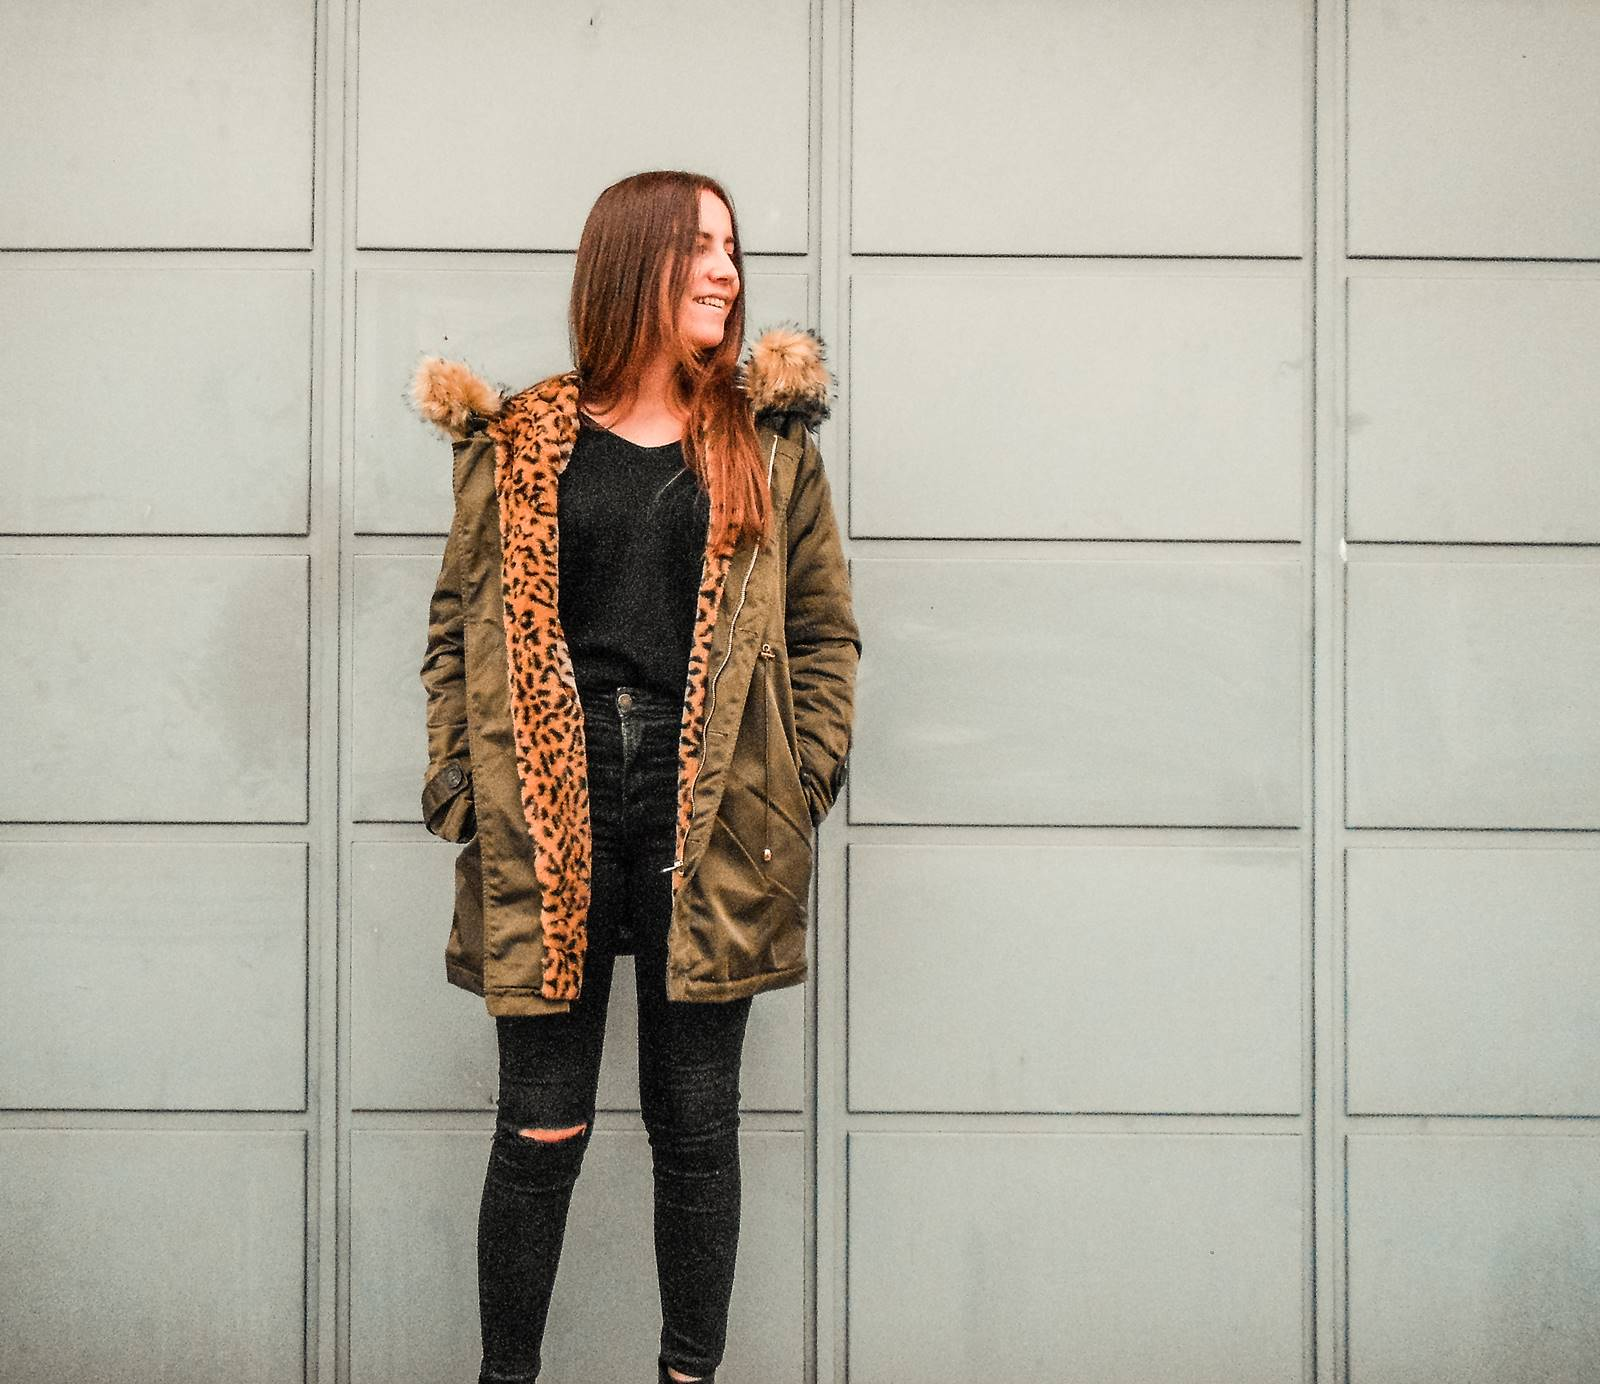 OOTD | Warm Coat from Loavies and Opinion About Quality